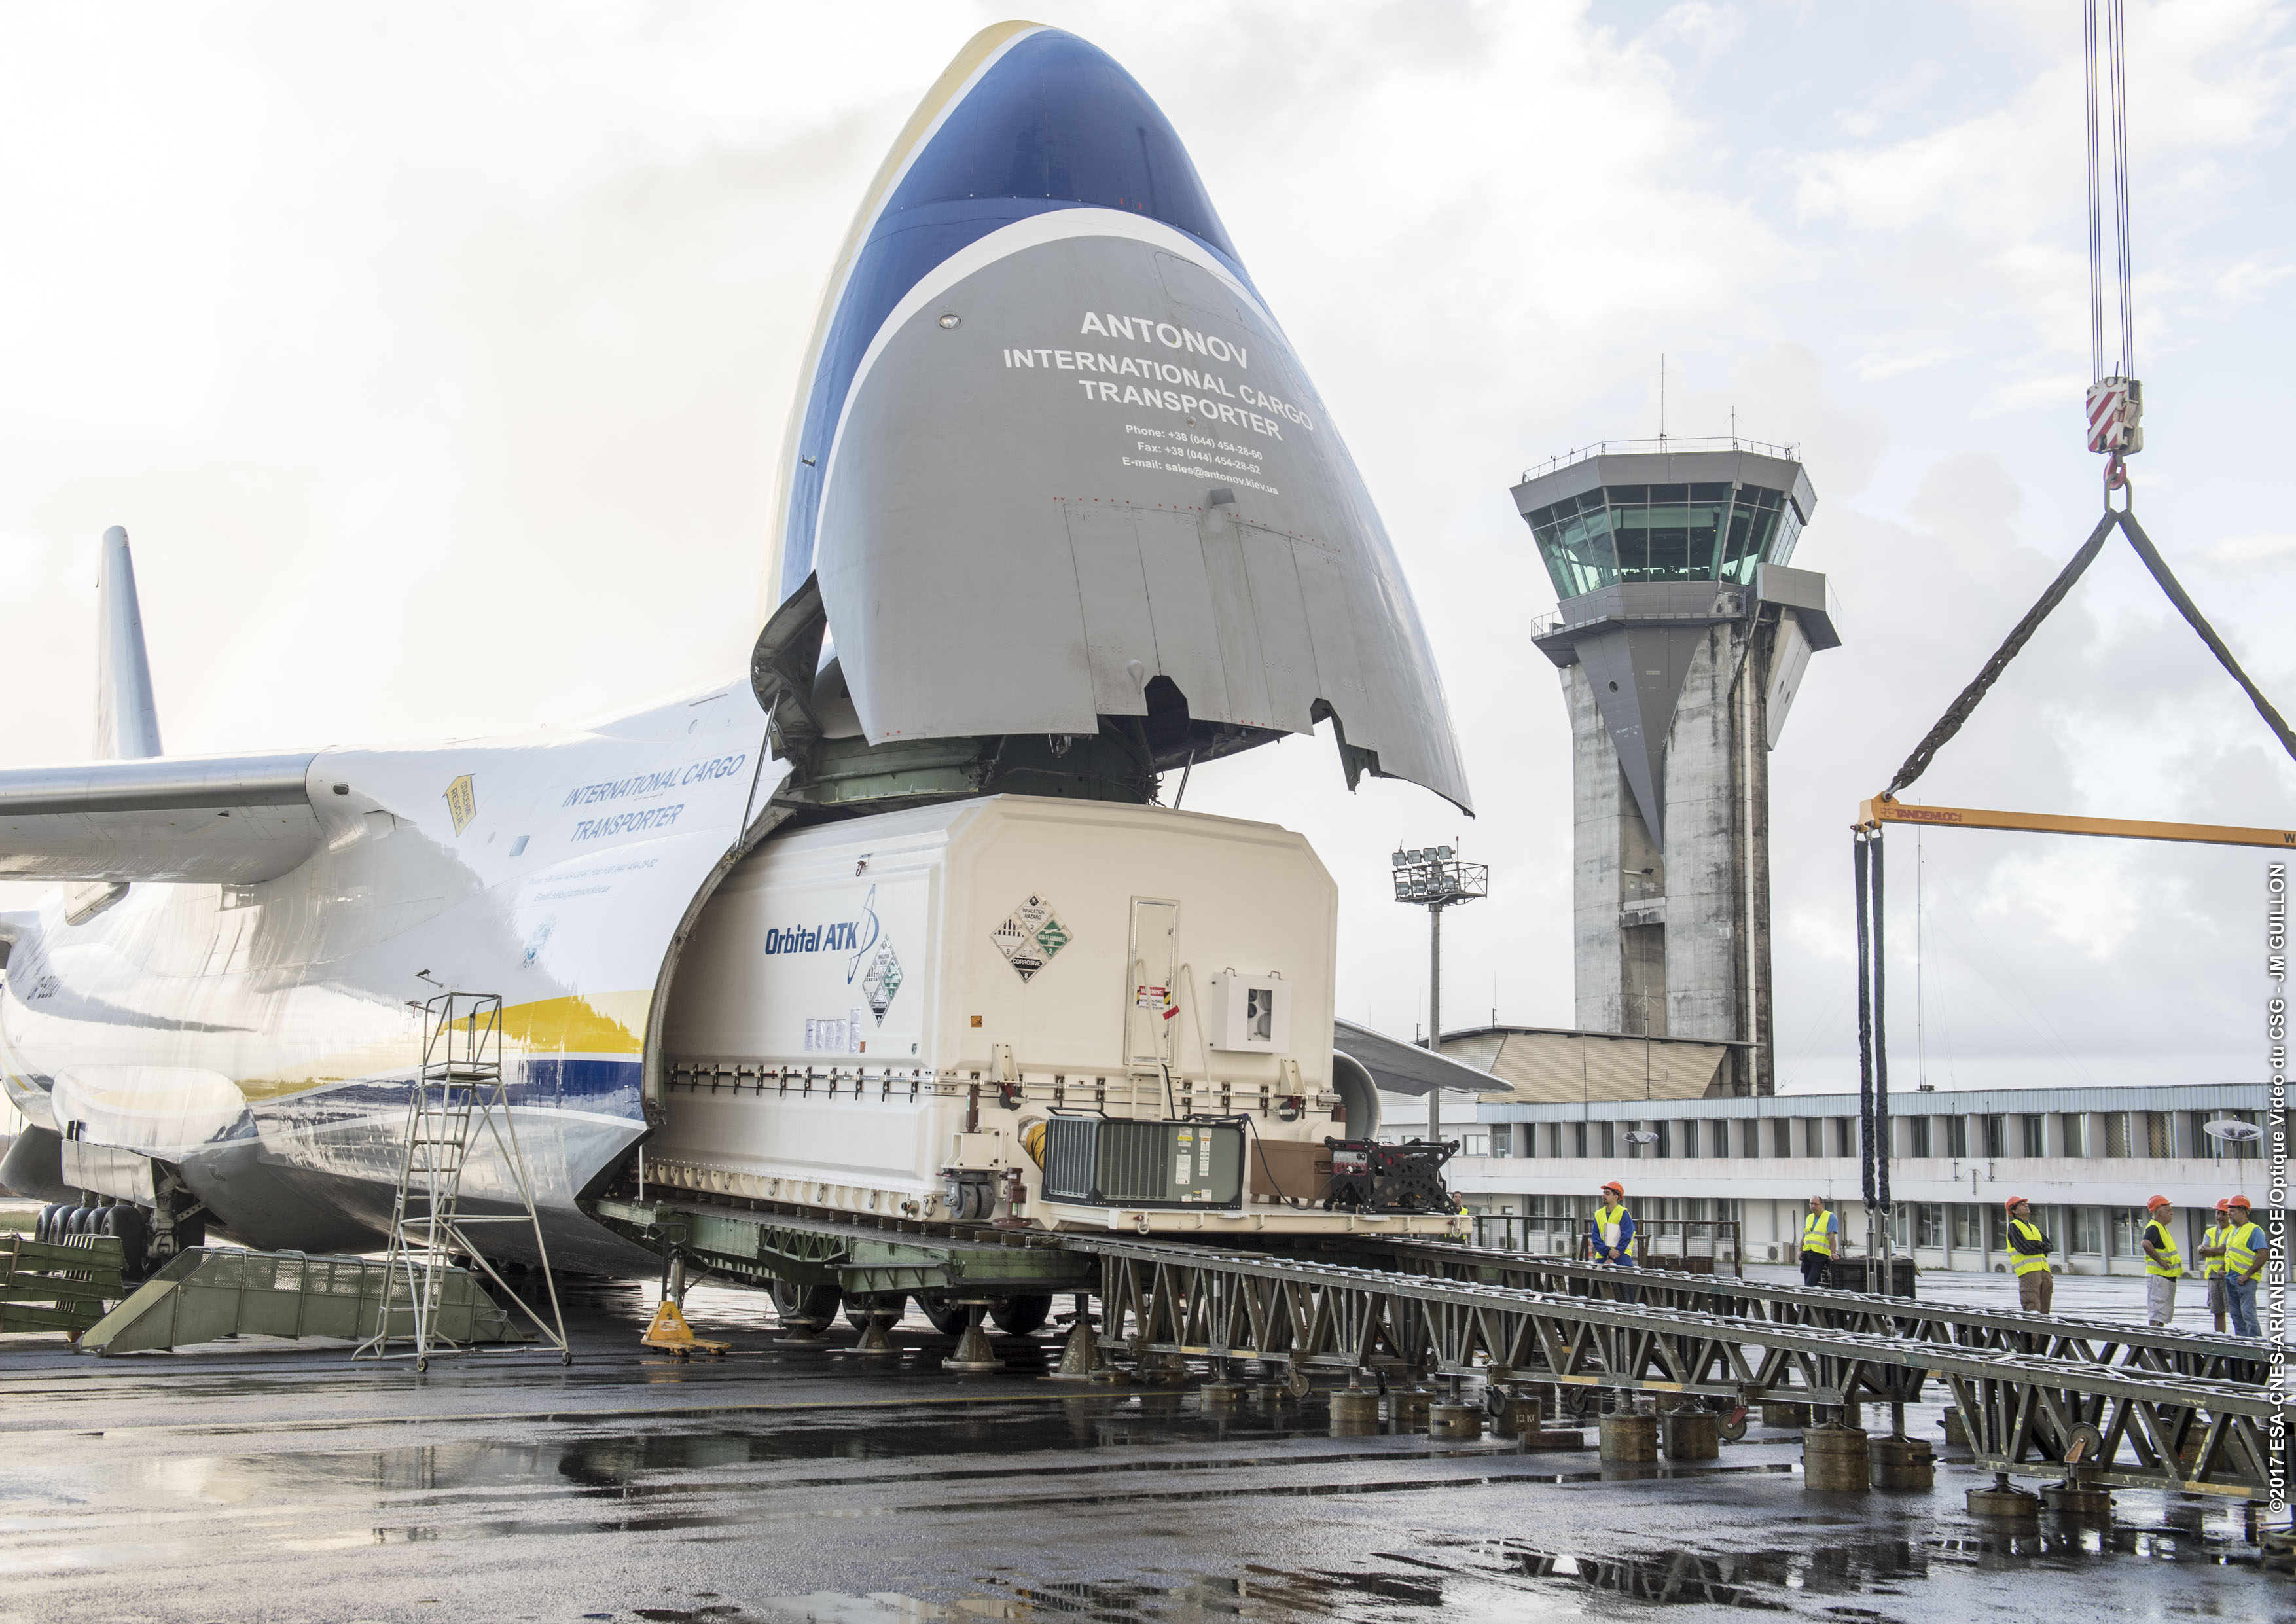 Al Yah 3 successfully arrives at launch site in French Guiana